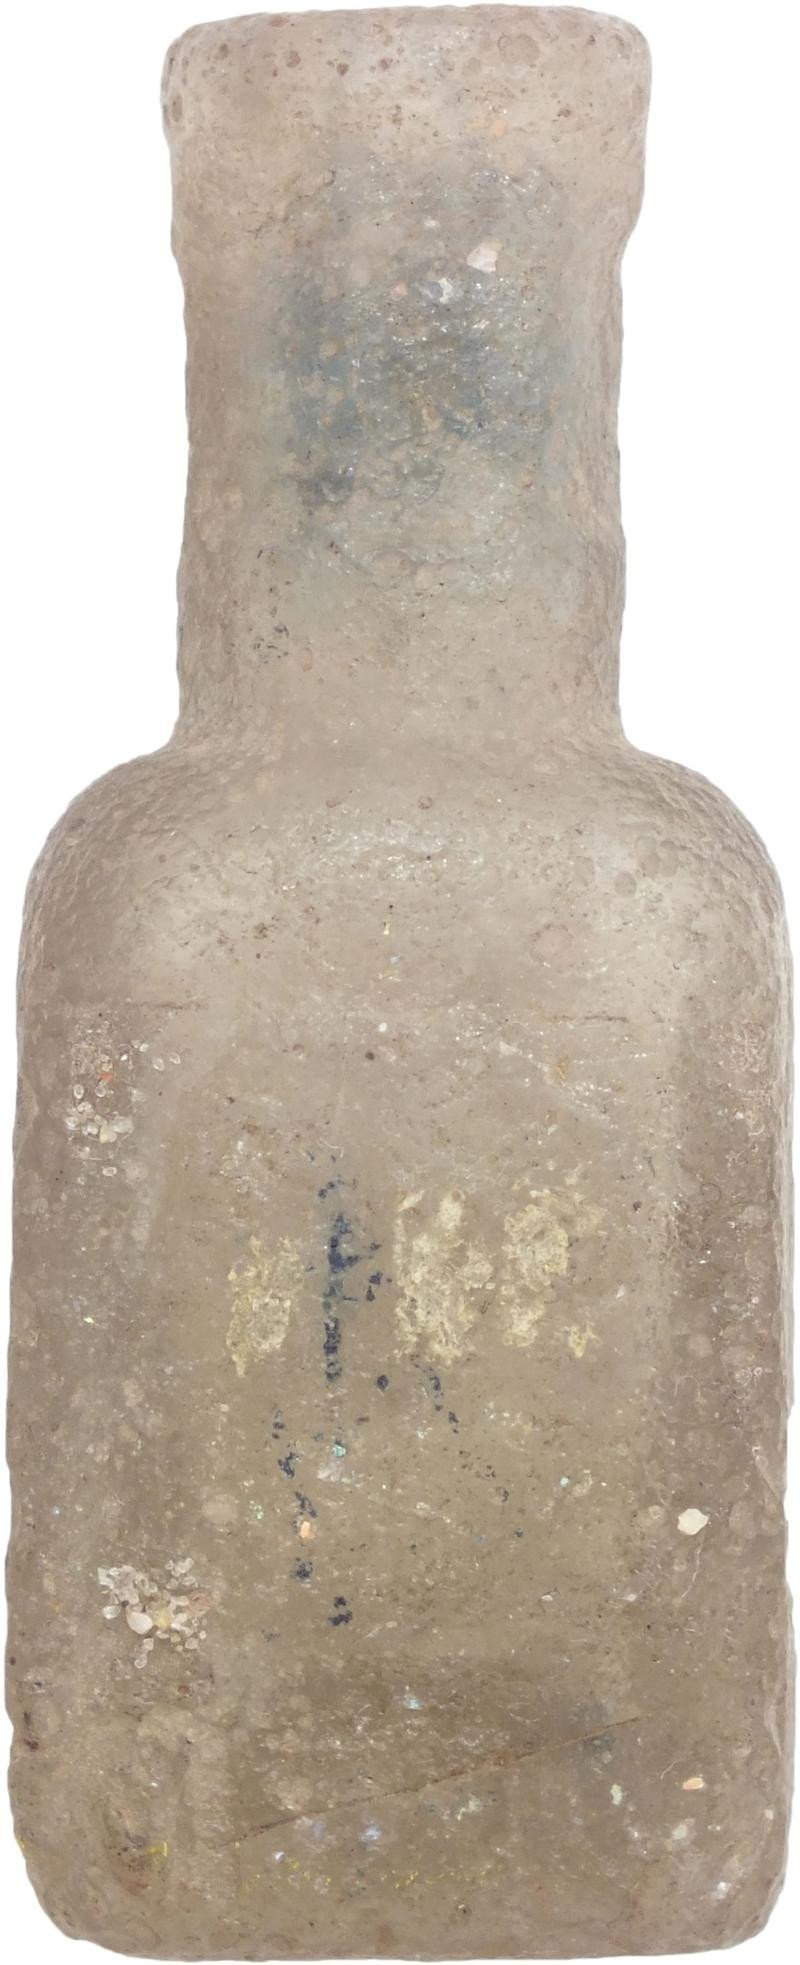 EGYPTIAN GLASS SCENT BOTTLE 500-400 BC - Fagan Arms